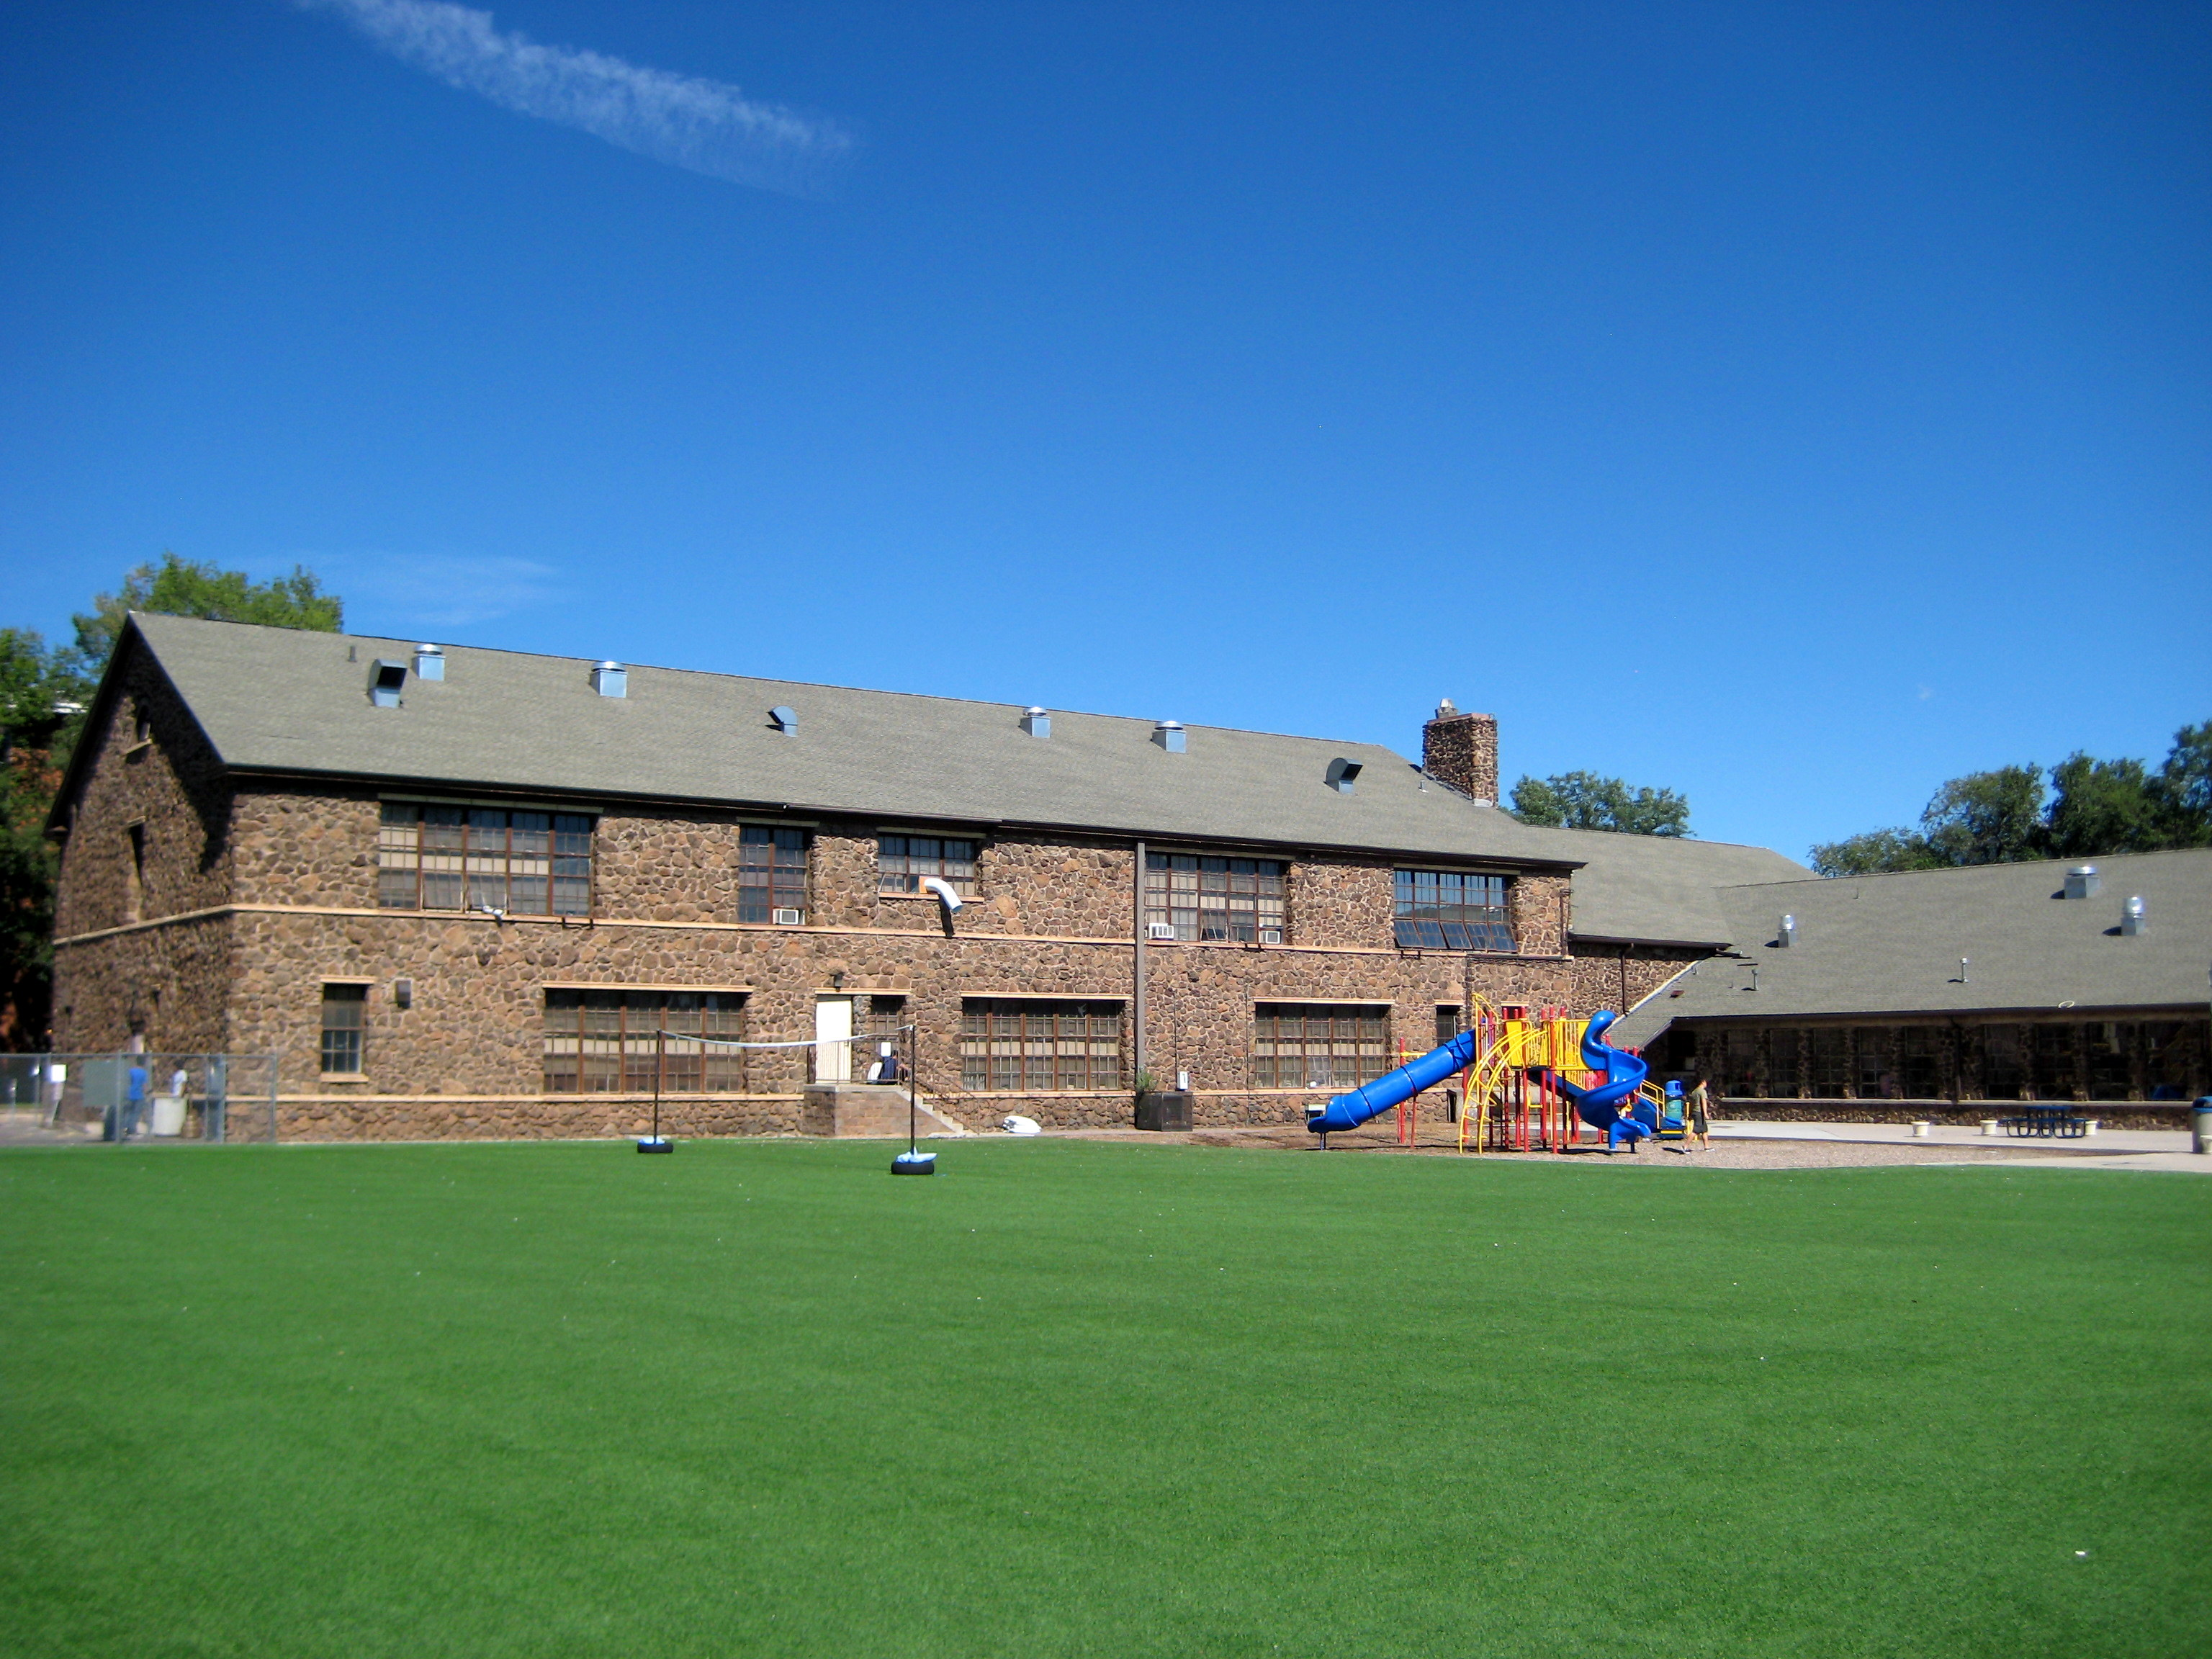 File South Beaver School Playground And Rear Of Wikimedia Commons